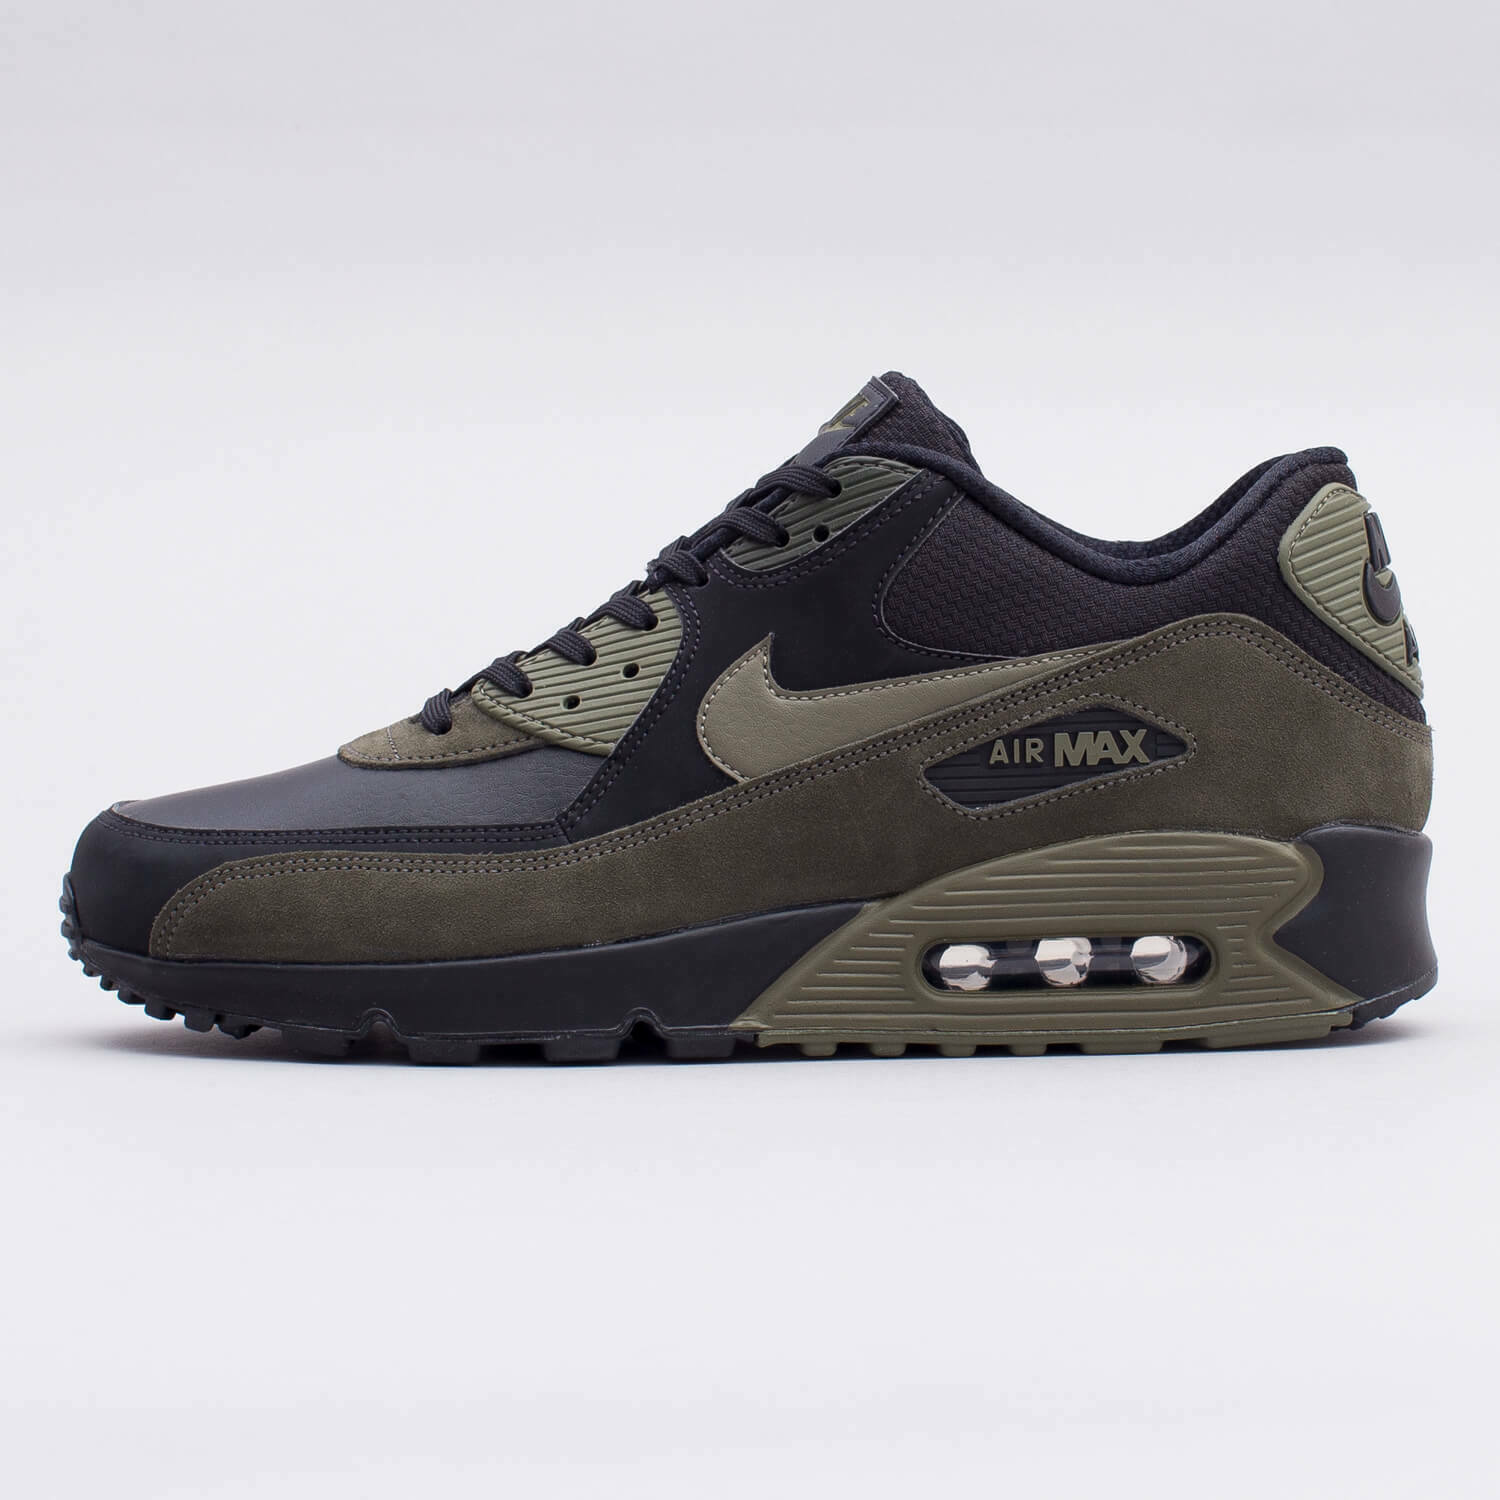 Size 8.5 - Nike Air Max 90 Medium Olive 2018 for sale online | eBay